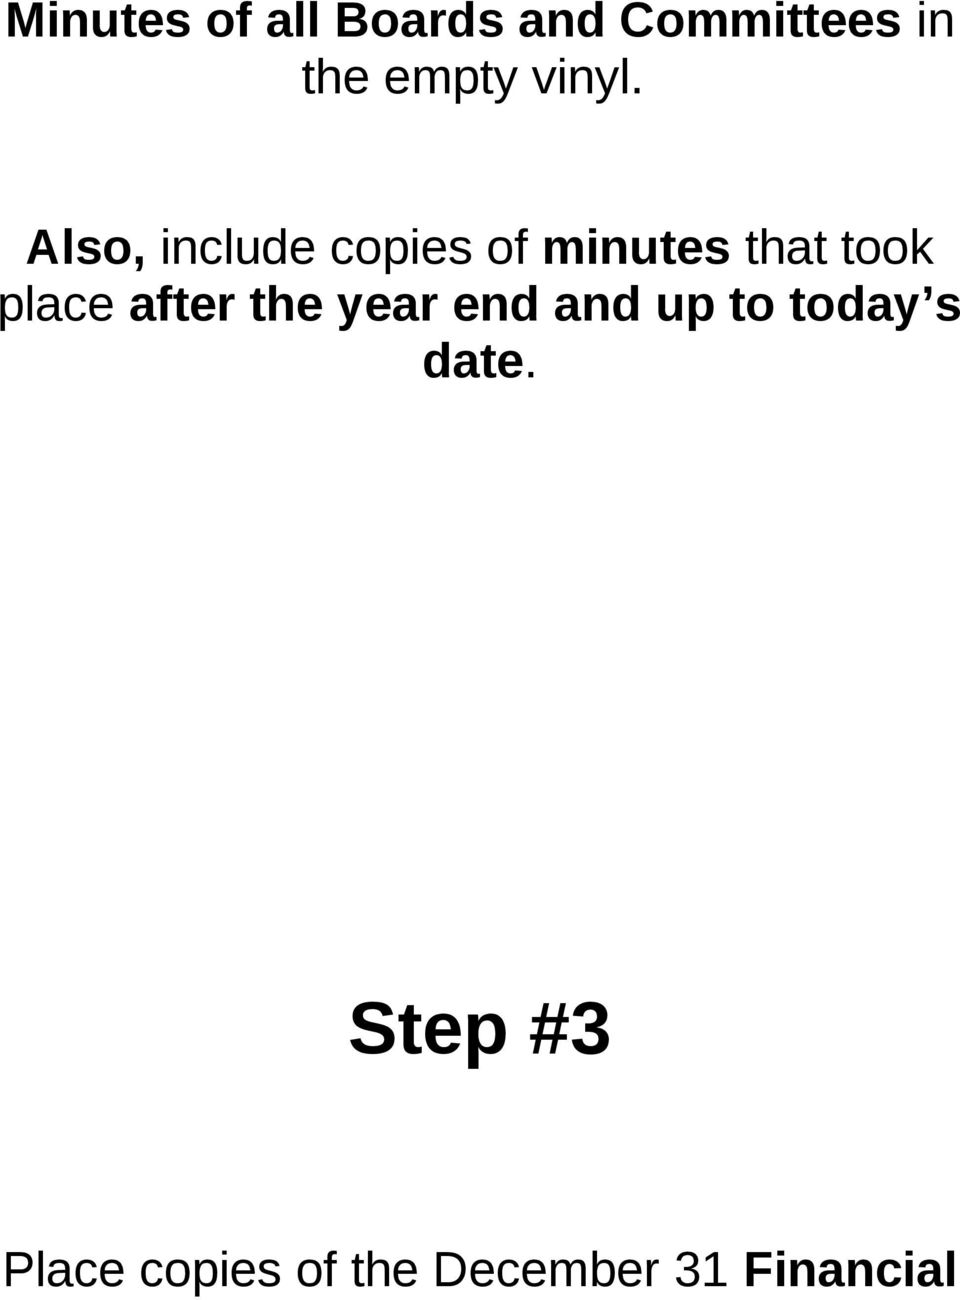 Also, include copies of minutes that took place